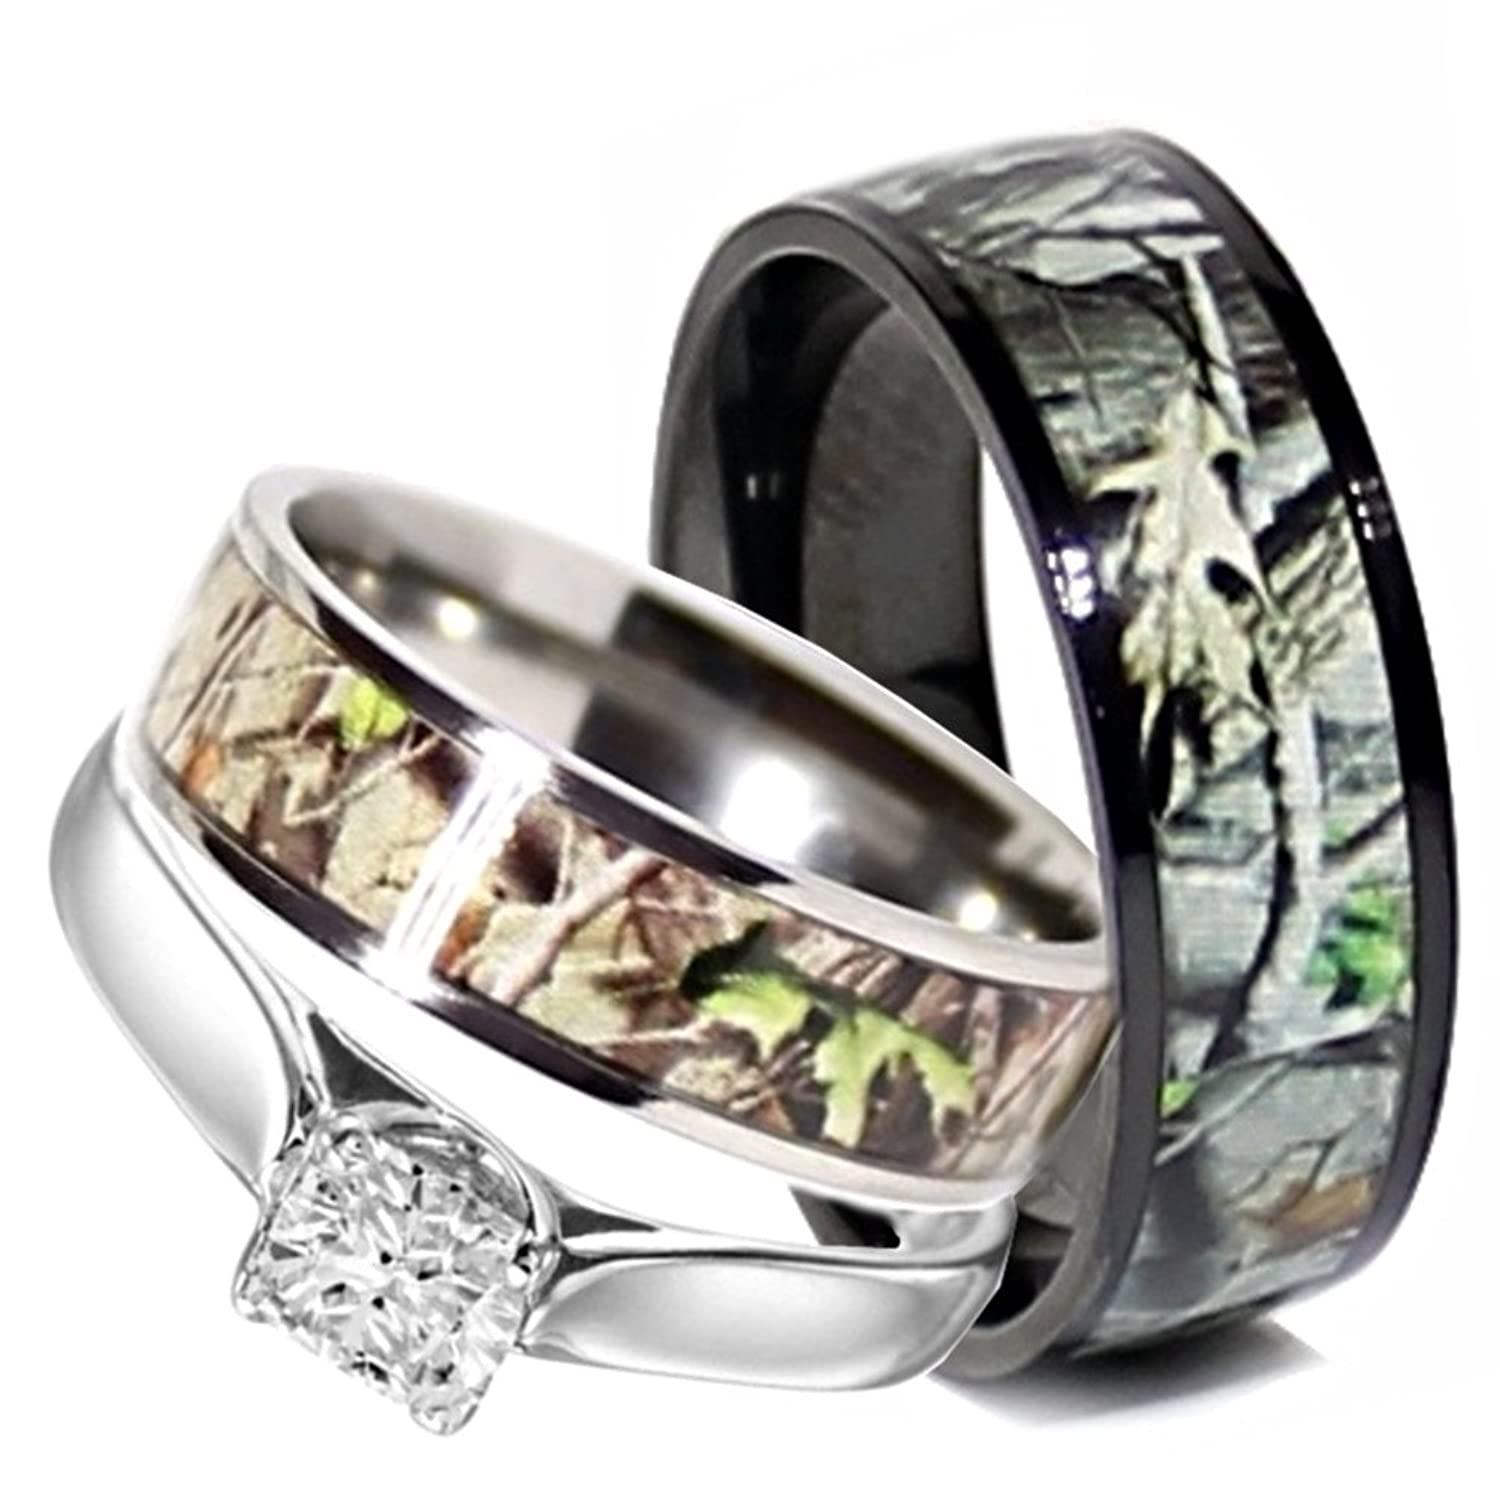 amazoncom camo wedding rings set his and hers 3 rings set sterling silver and titanium size men 10 women 10 jewelry - Titanium Wedding Ring Sets